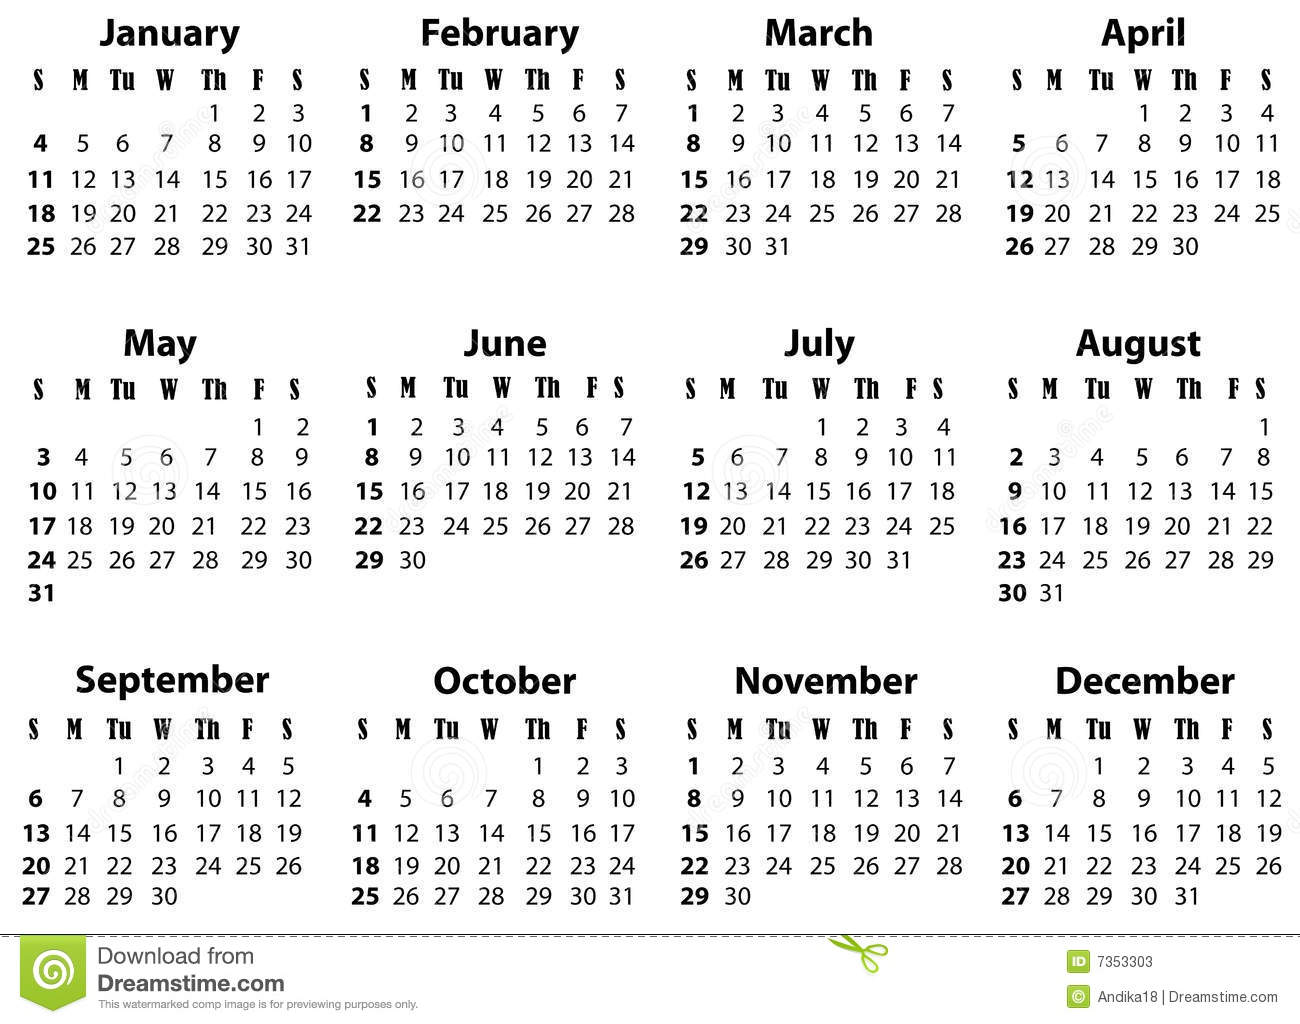 A Calendar For 2009 And 2020 Stock Image - Image: 7353303